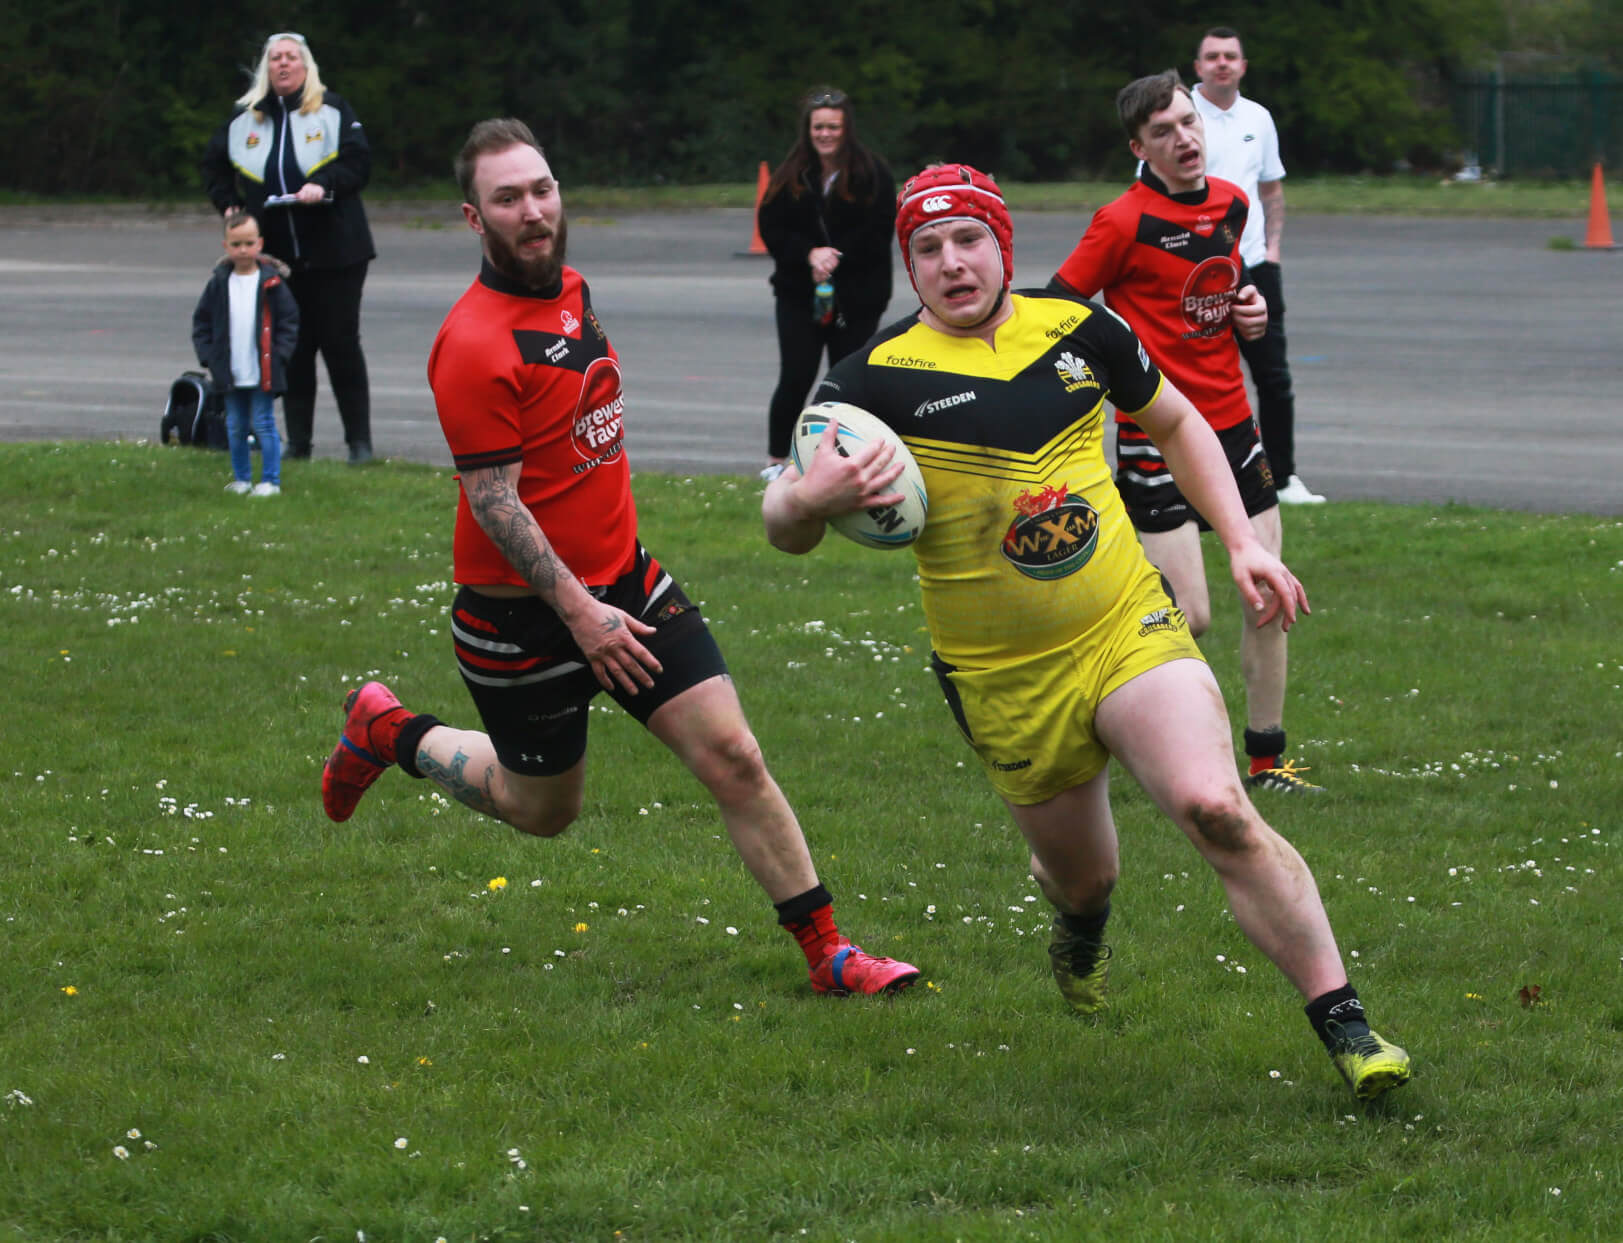 Report: North Wales Crusaders A 54-14 Ince Rose Bridge Lions